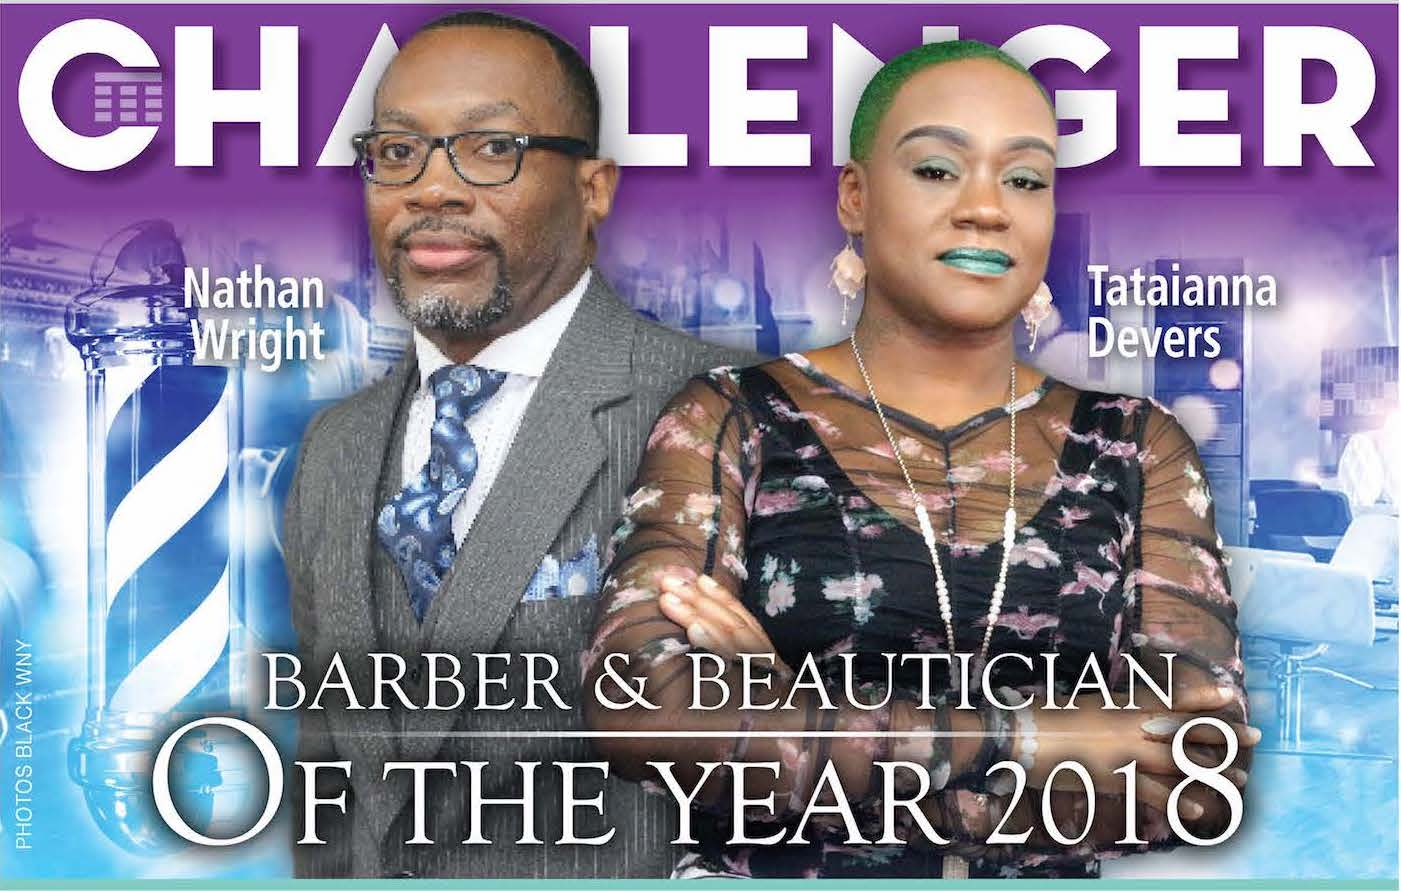 Meet Challenger Winners of 2018 Barber and Beautician Awards